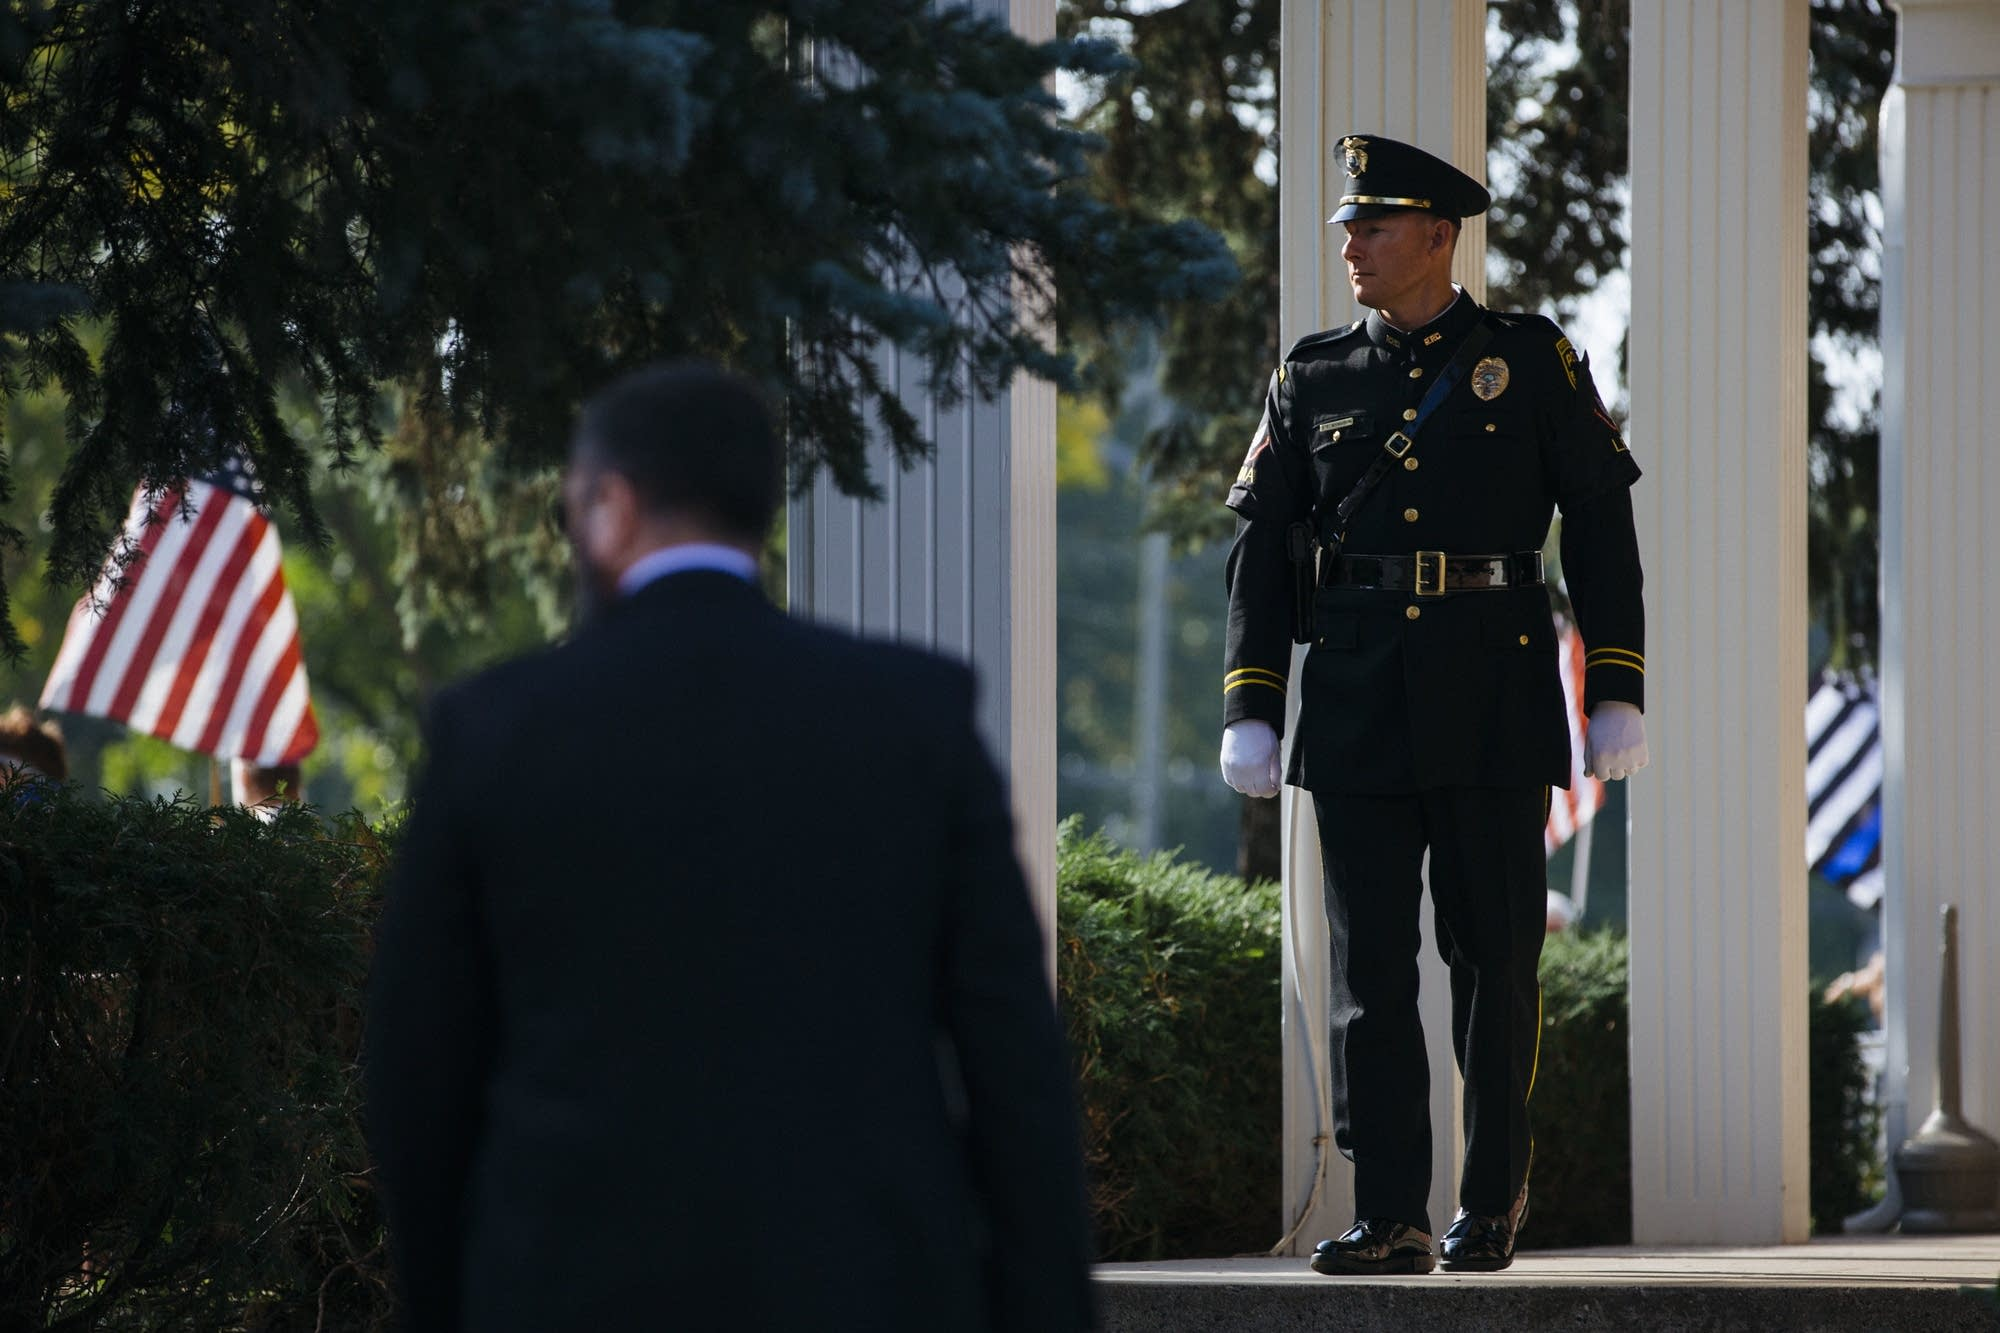 A Hopkins police officer stands on the steps of the church.